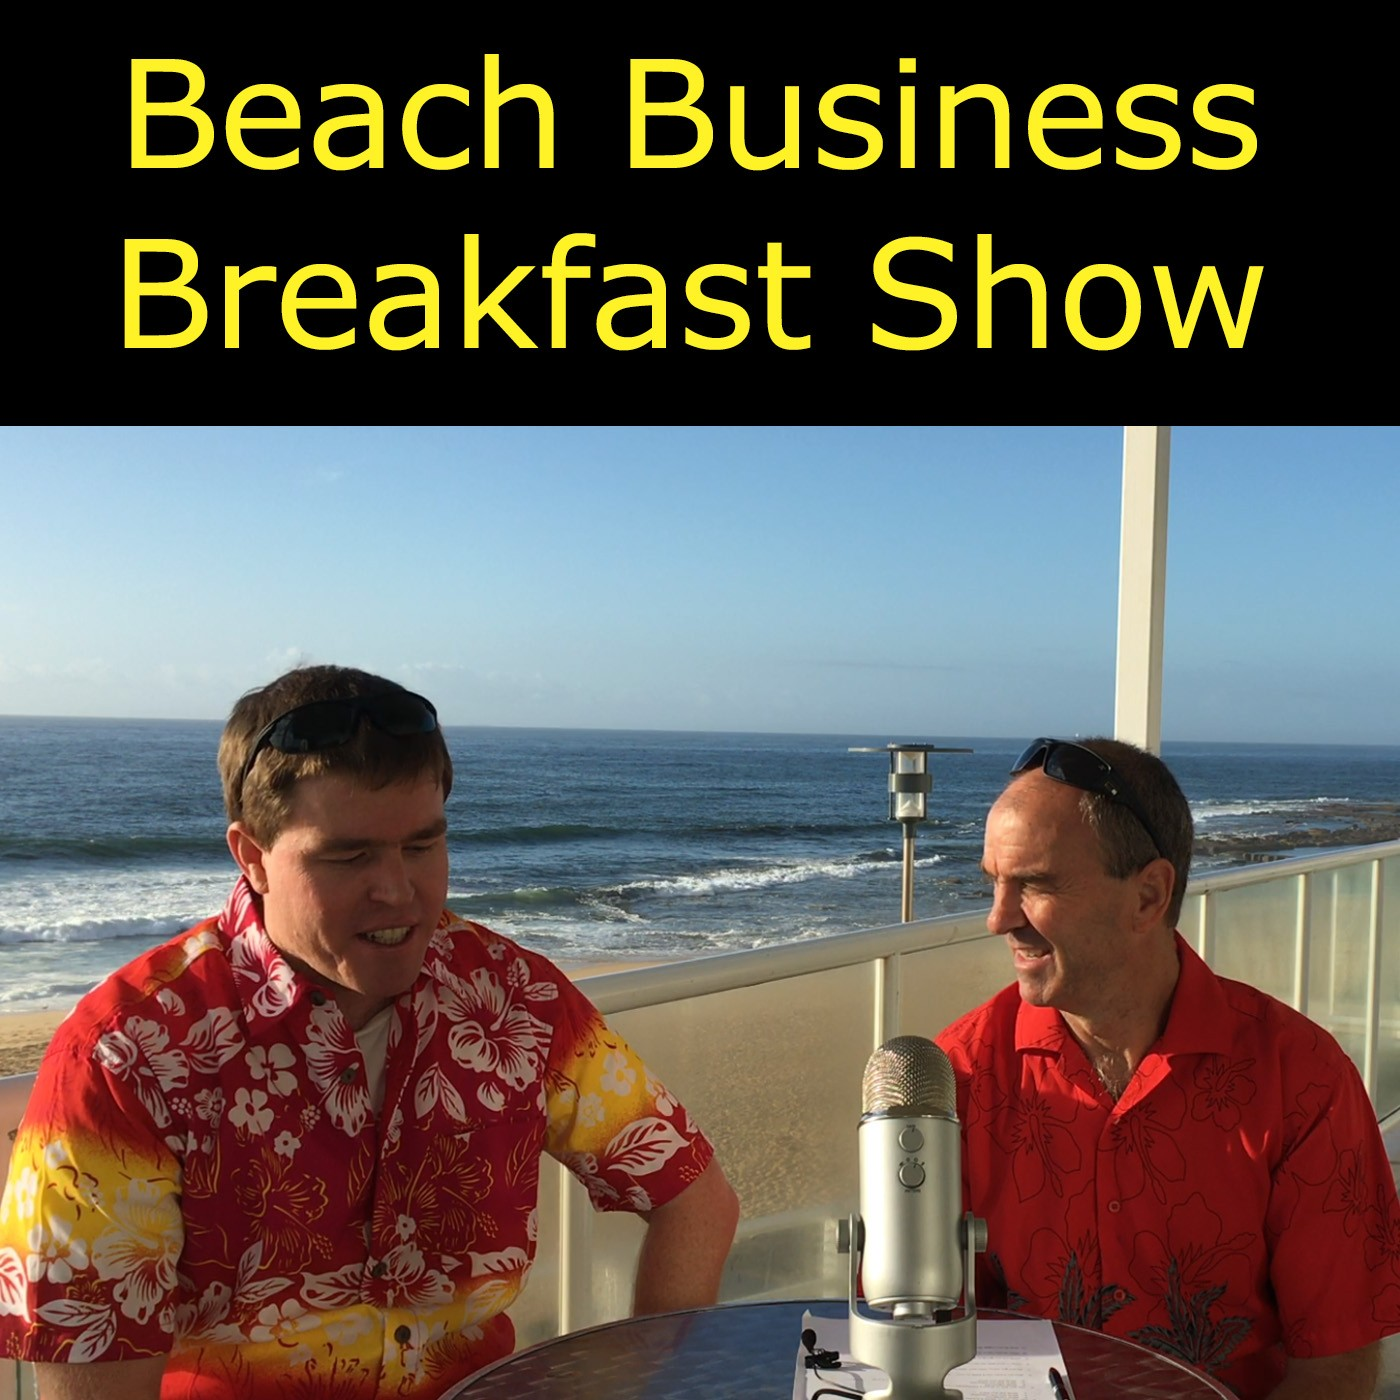 Beach Business Breakfast Show